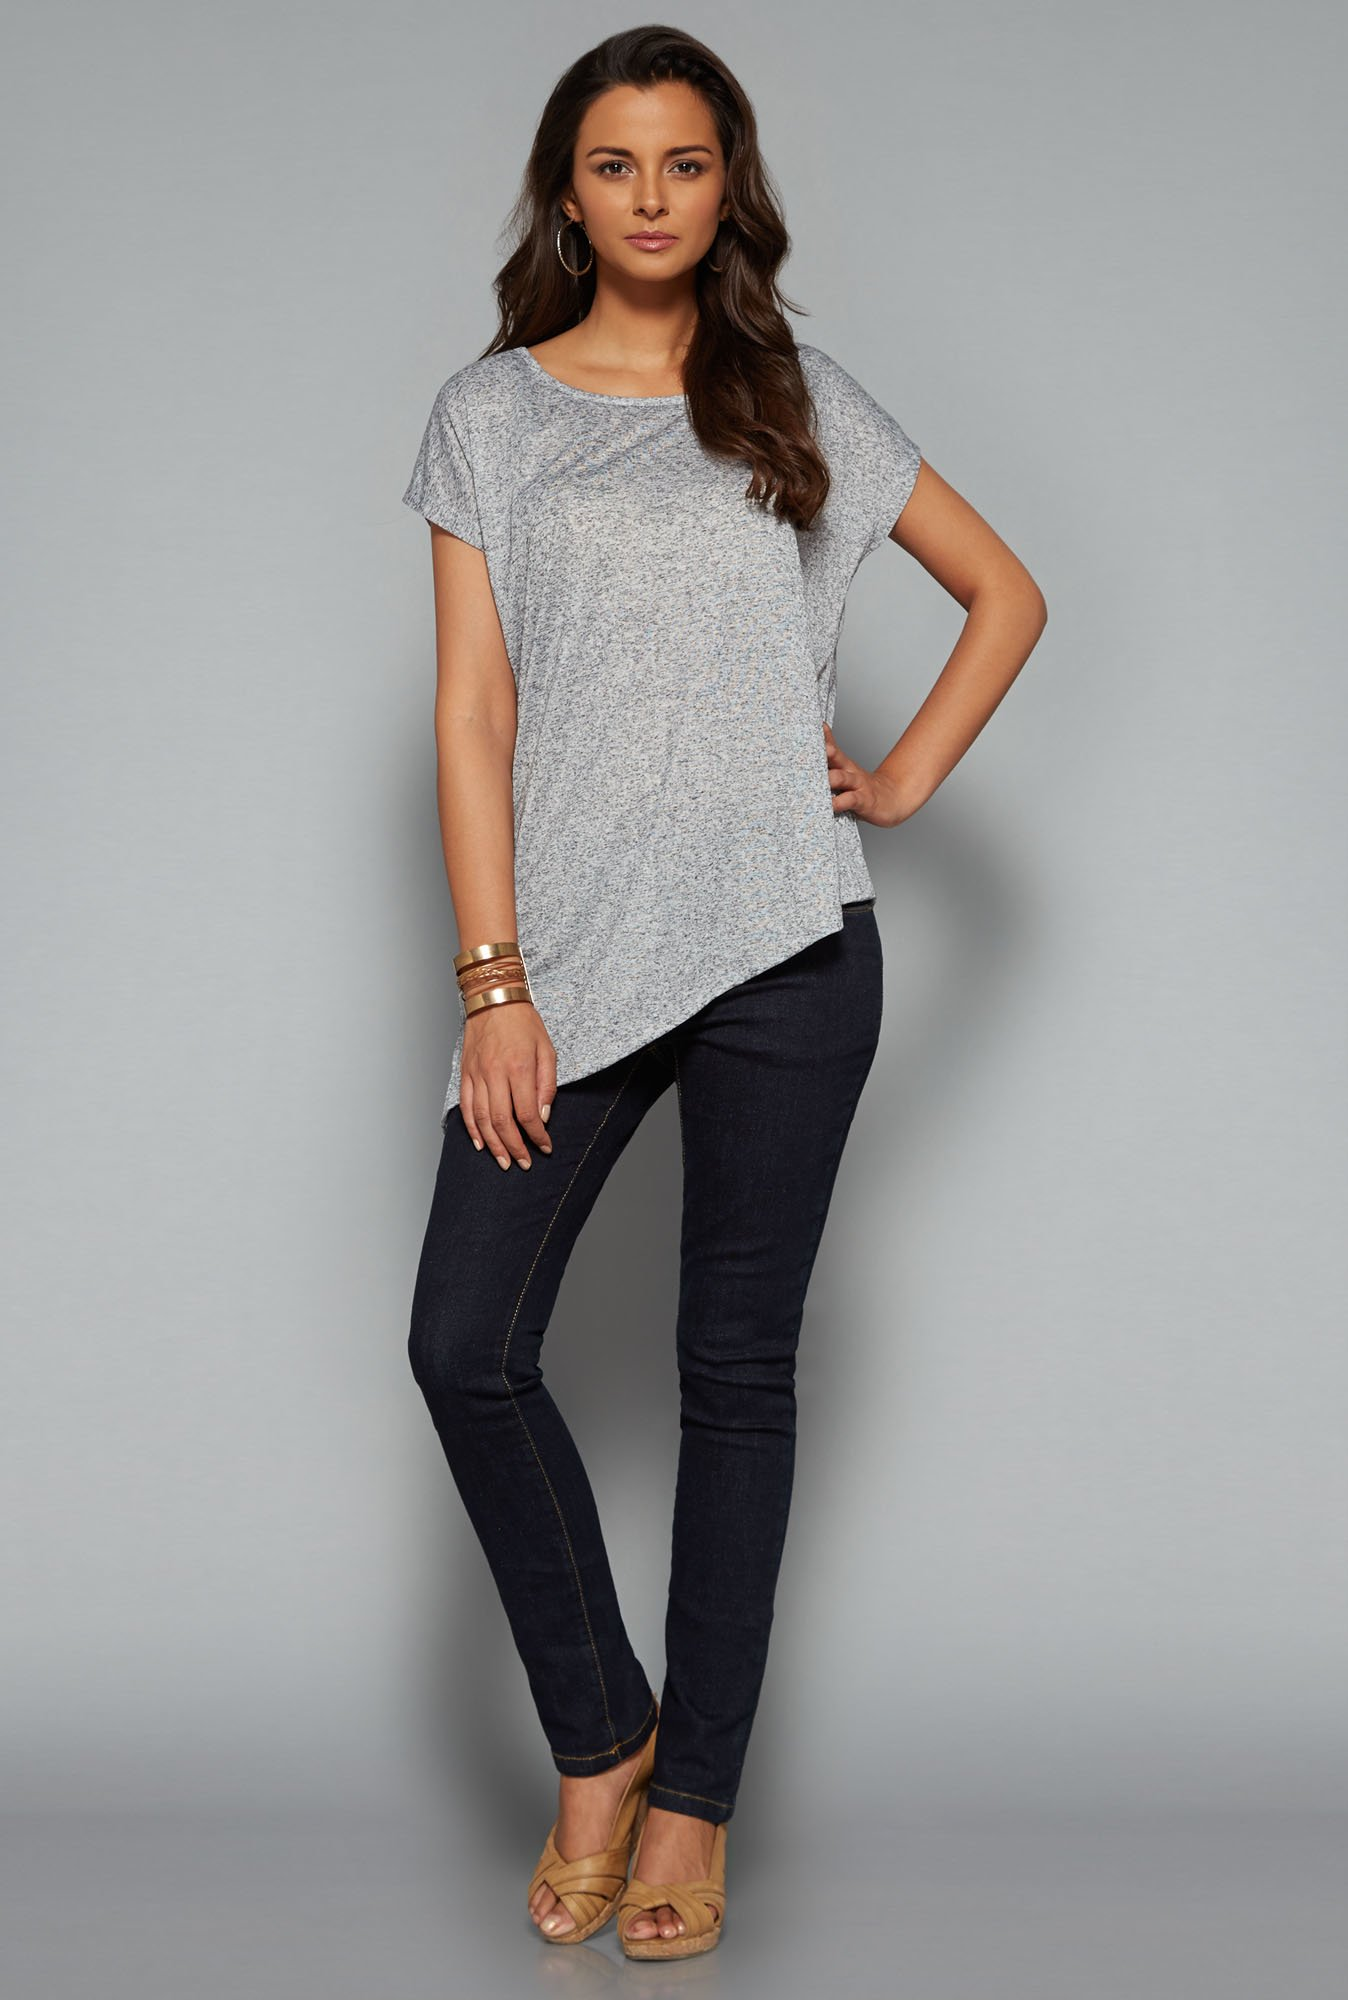 LOV Grey Printed T Shirt